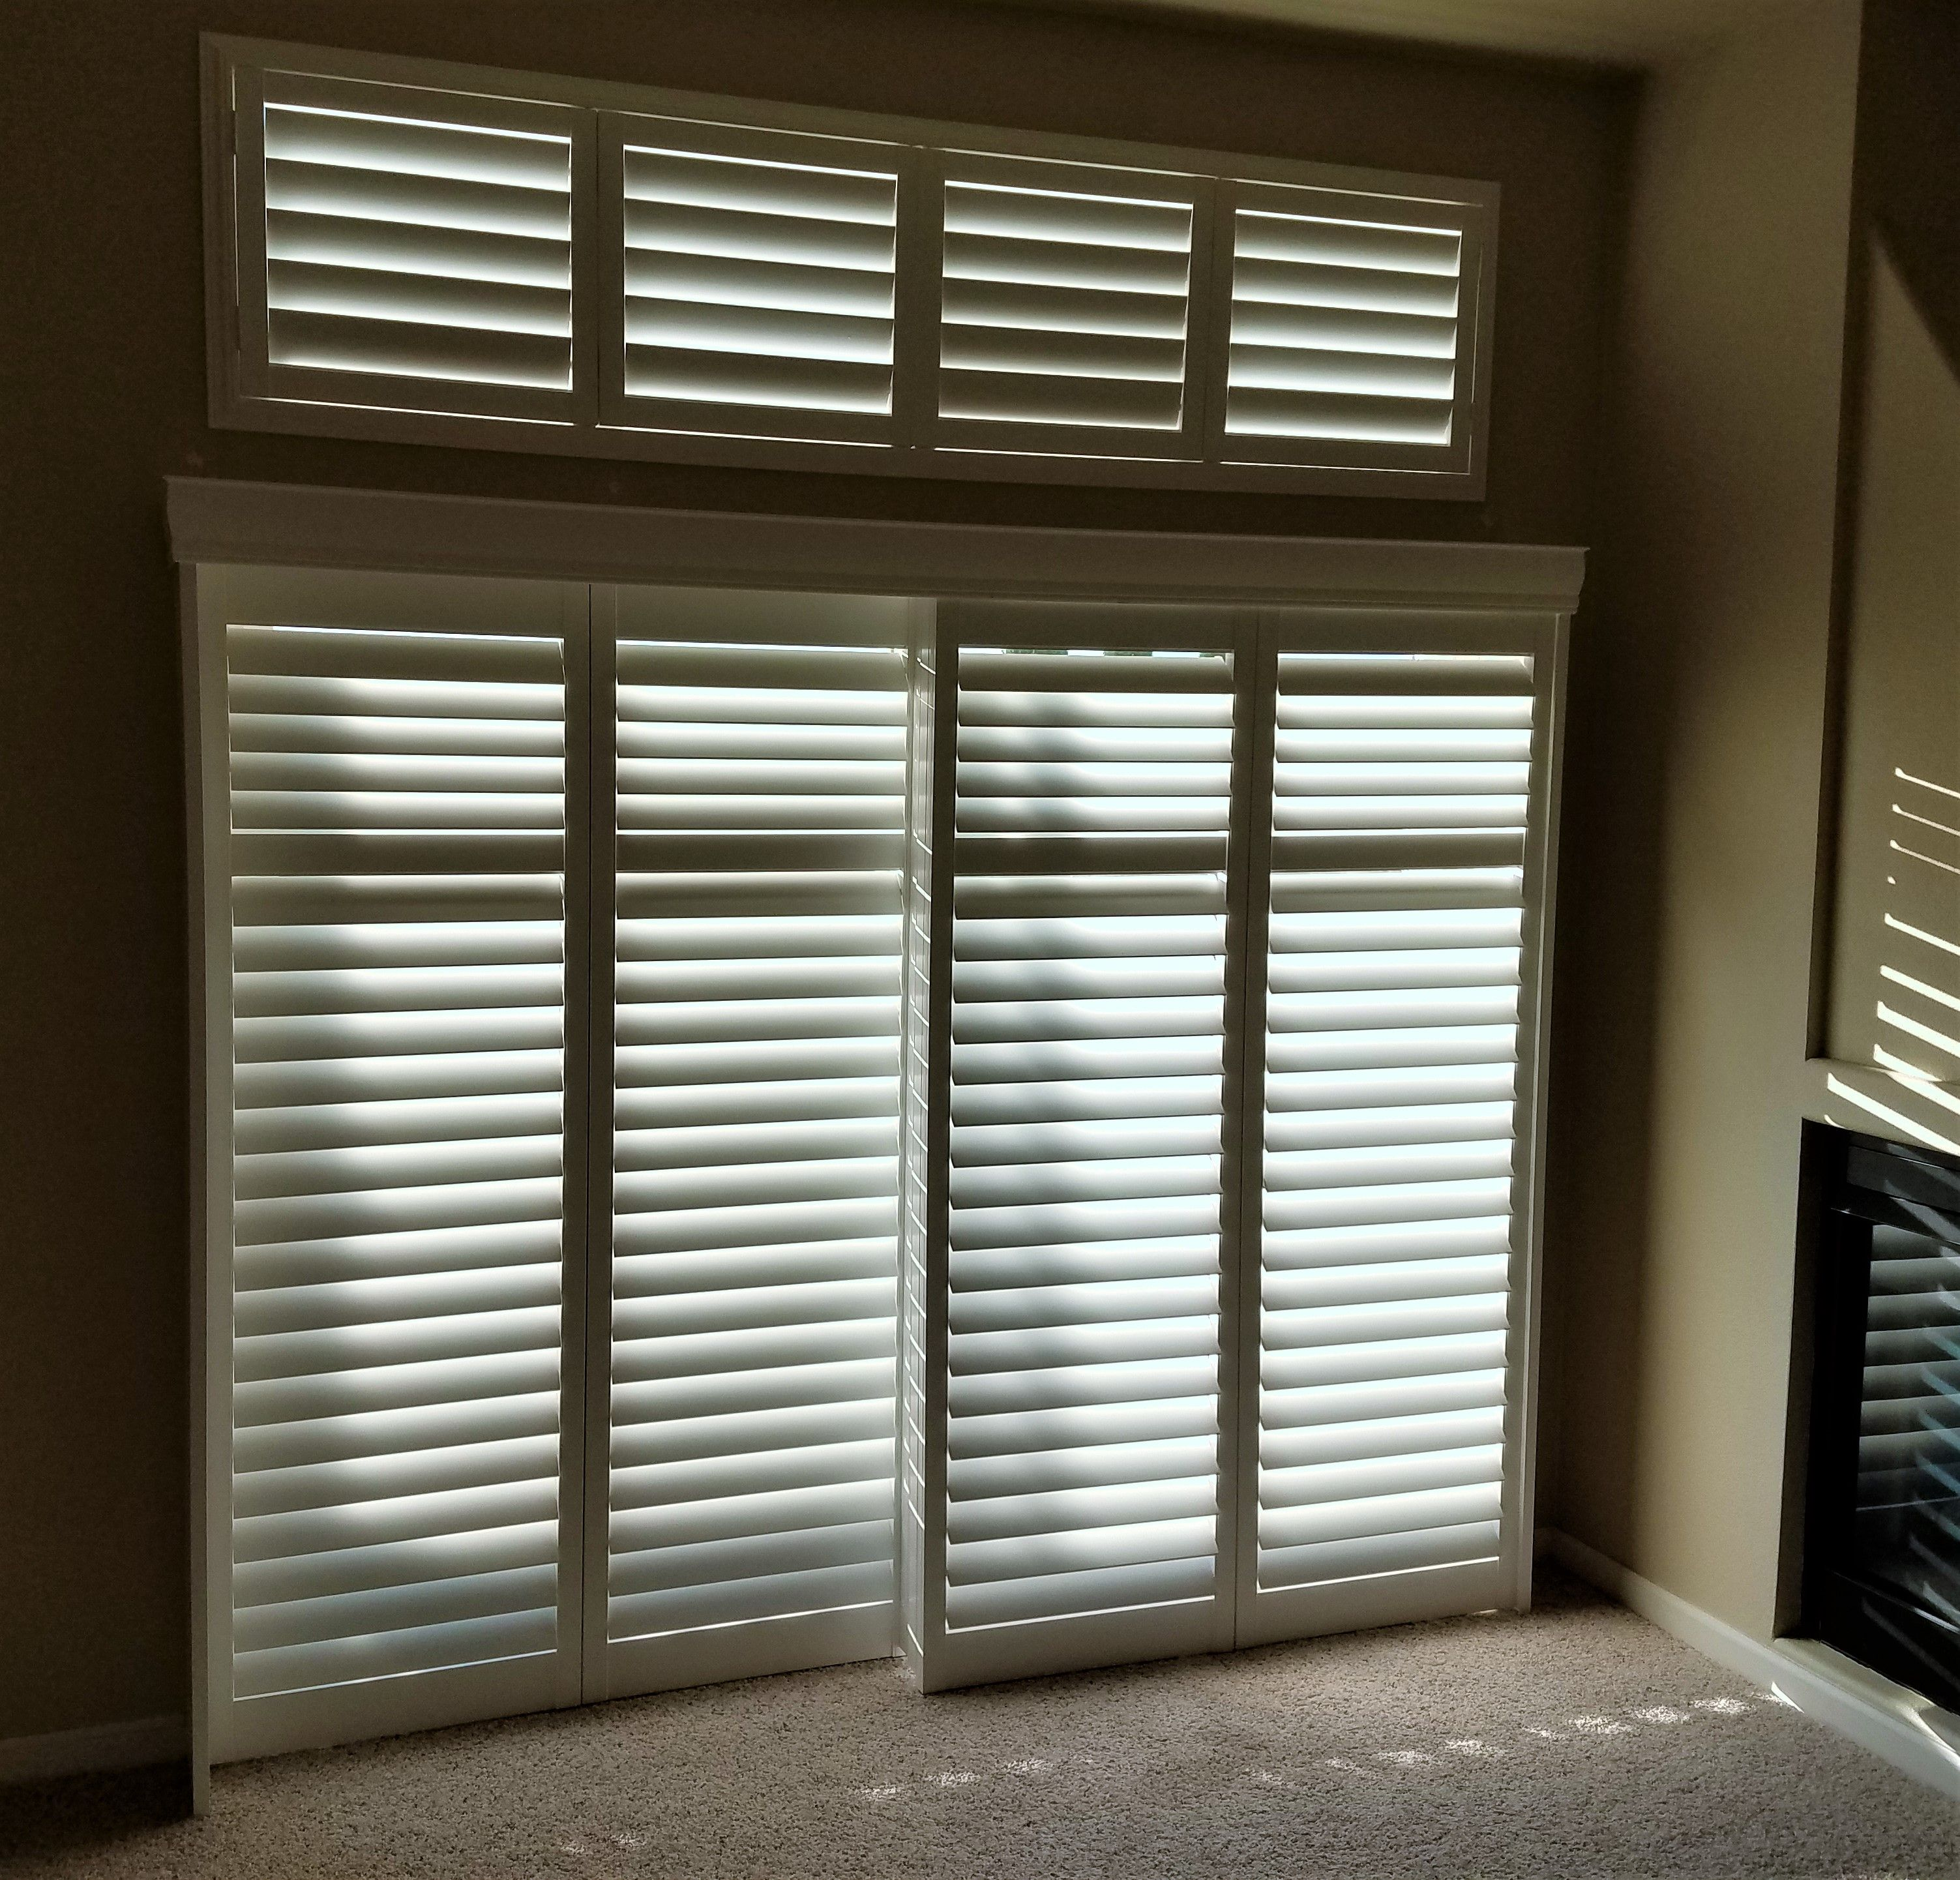 Hunter Douglas 3 1 2 Palm Beach Shutters Used On A Sliding Glass Door Transom Above Color Bright Whi Popular Window Treatments Sliding Glass Door Shutters